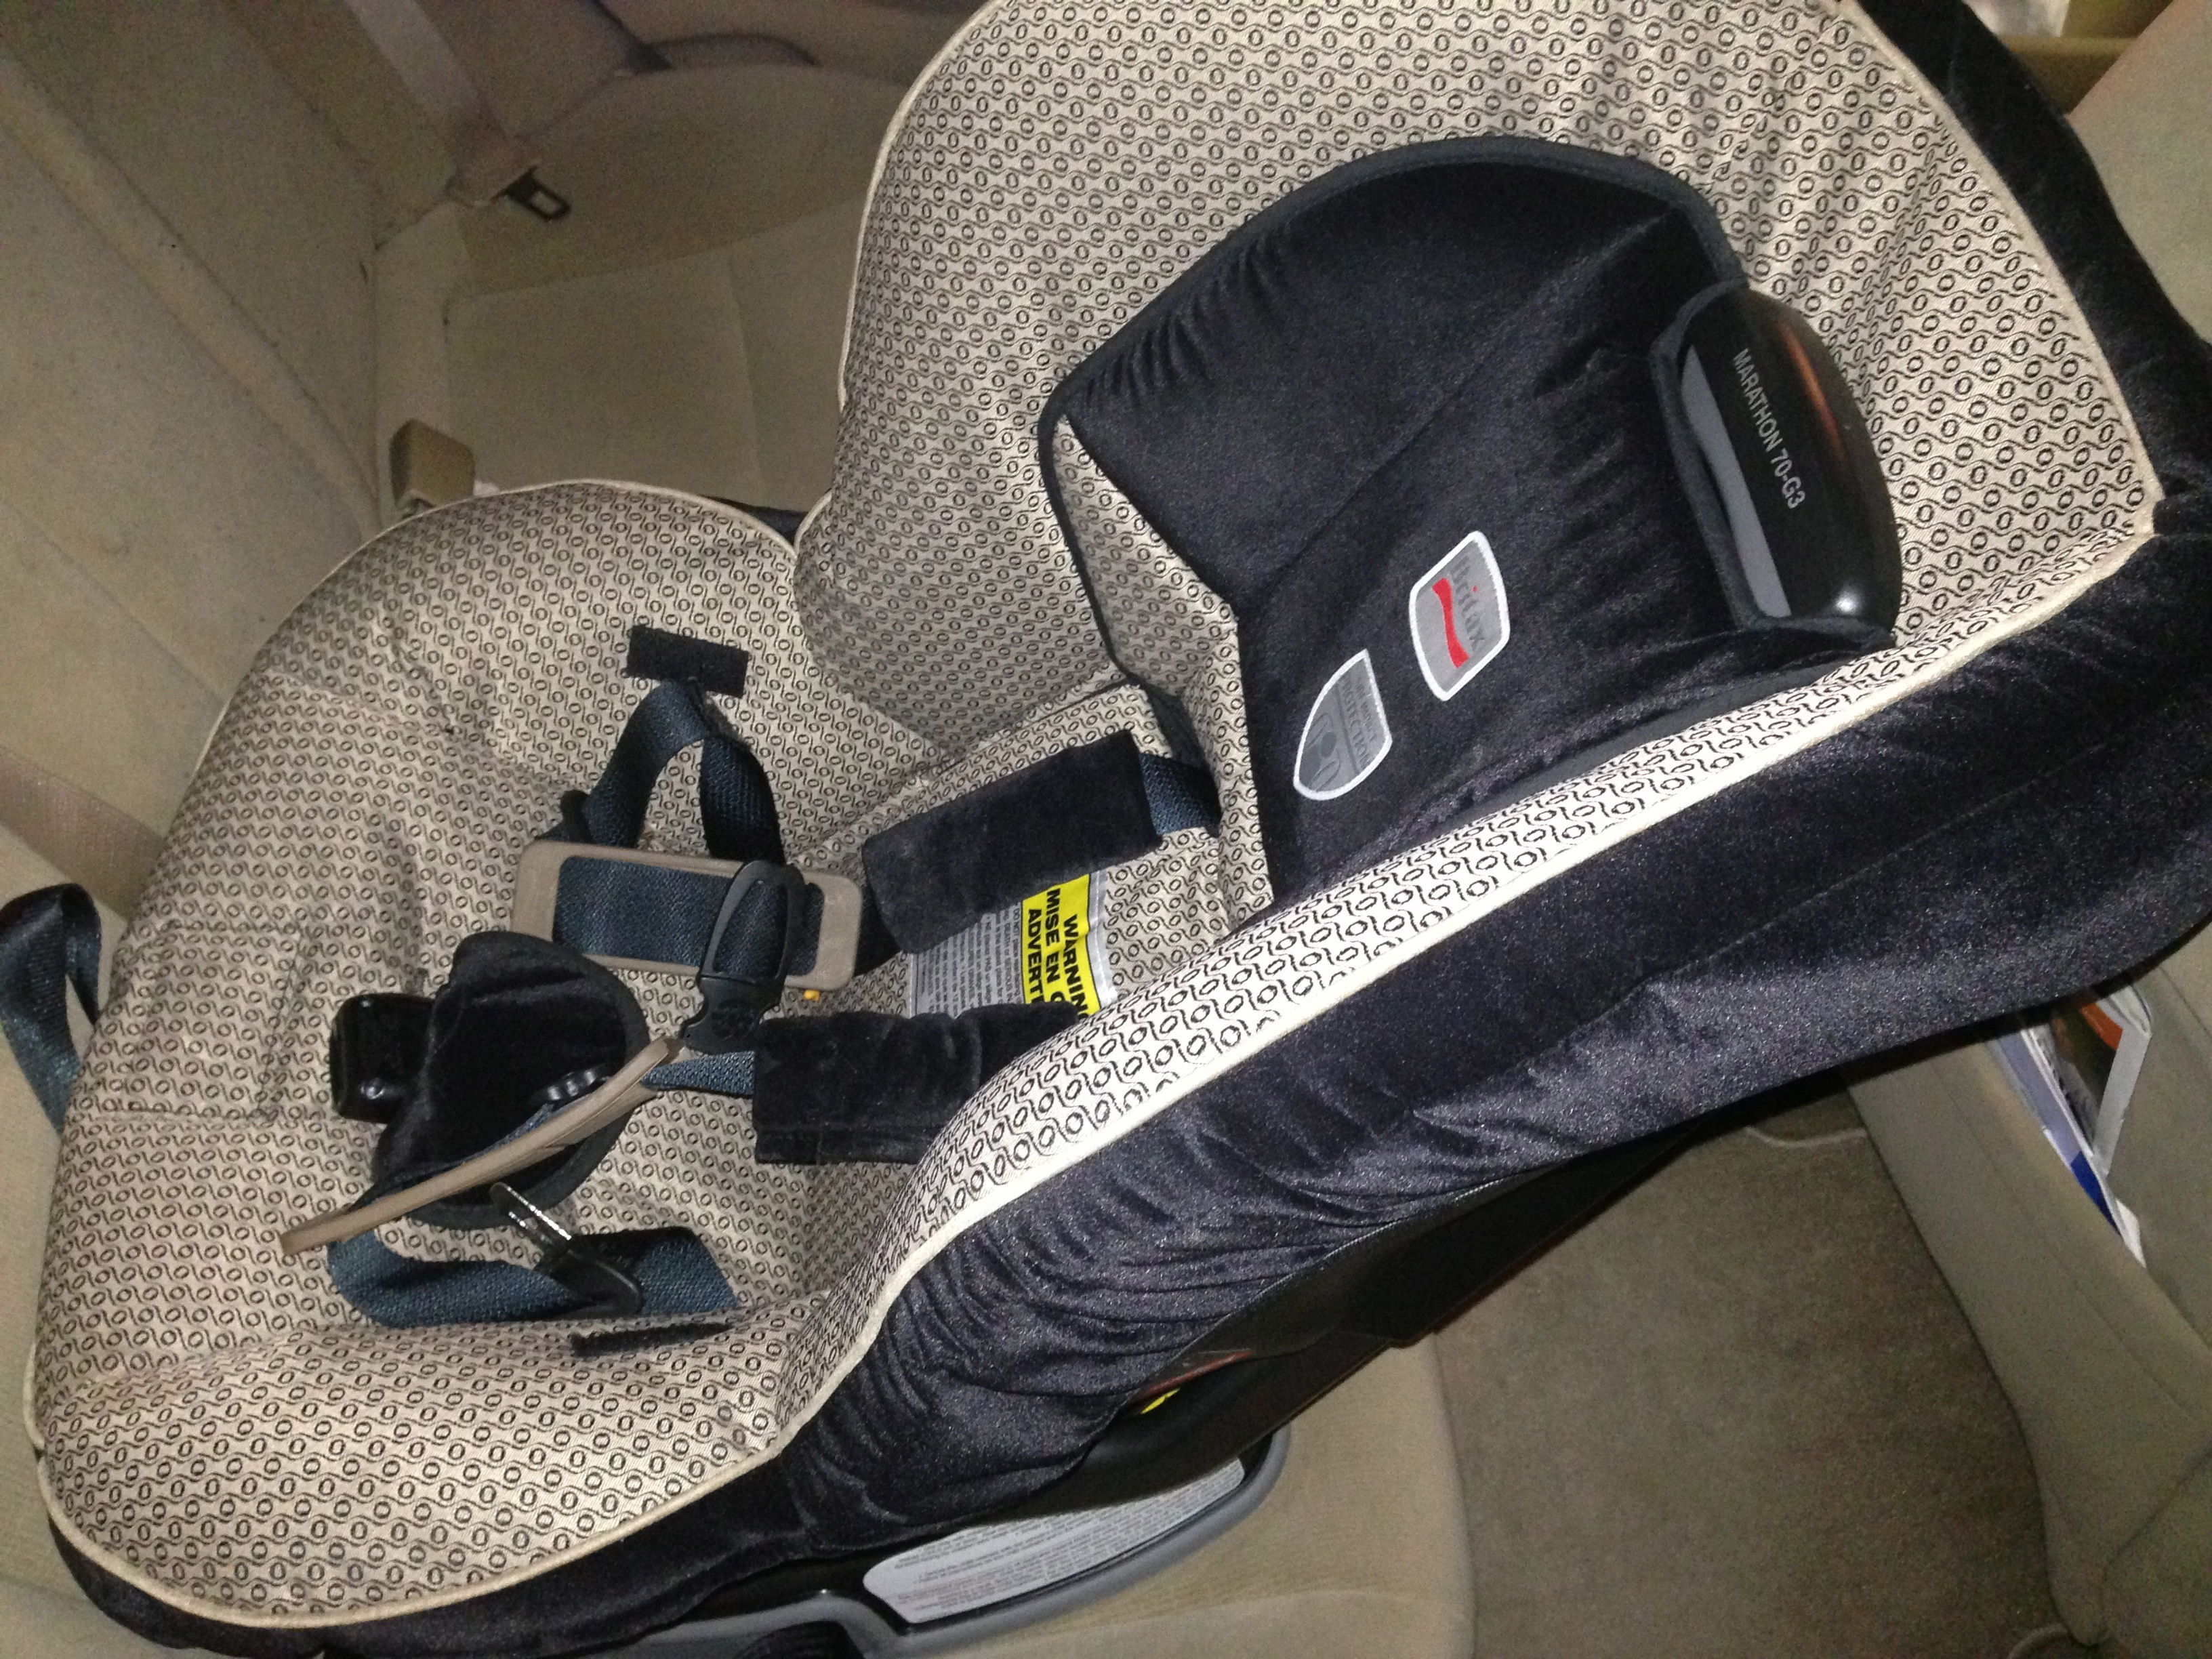 Instead of Renting a Car Seat, Check it